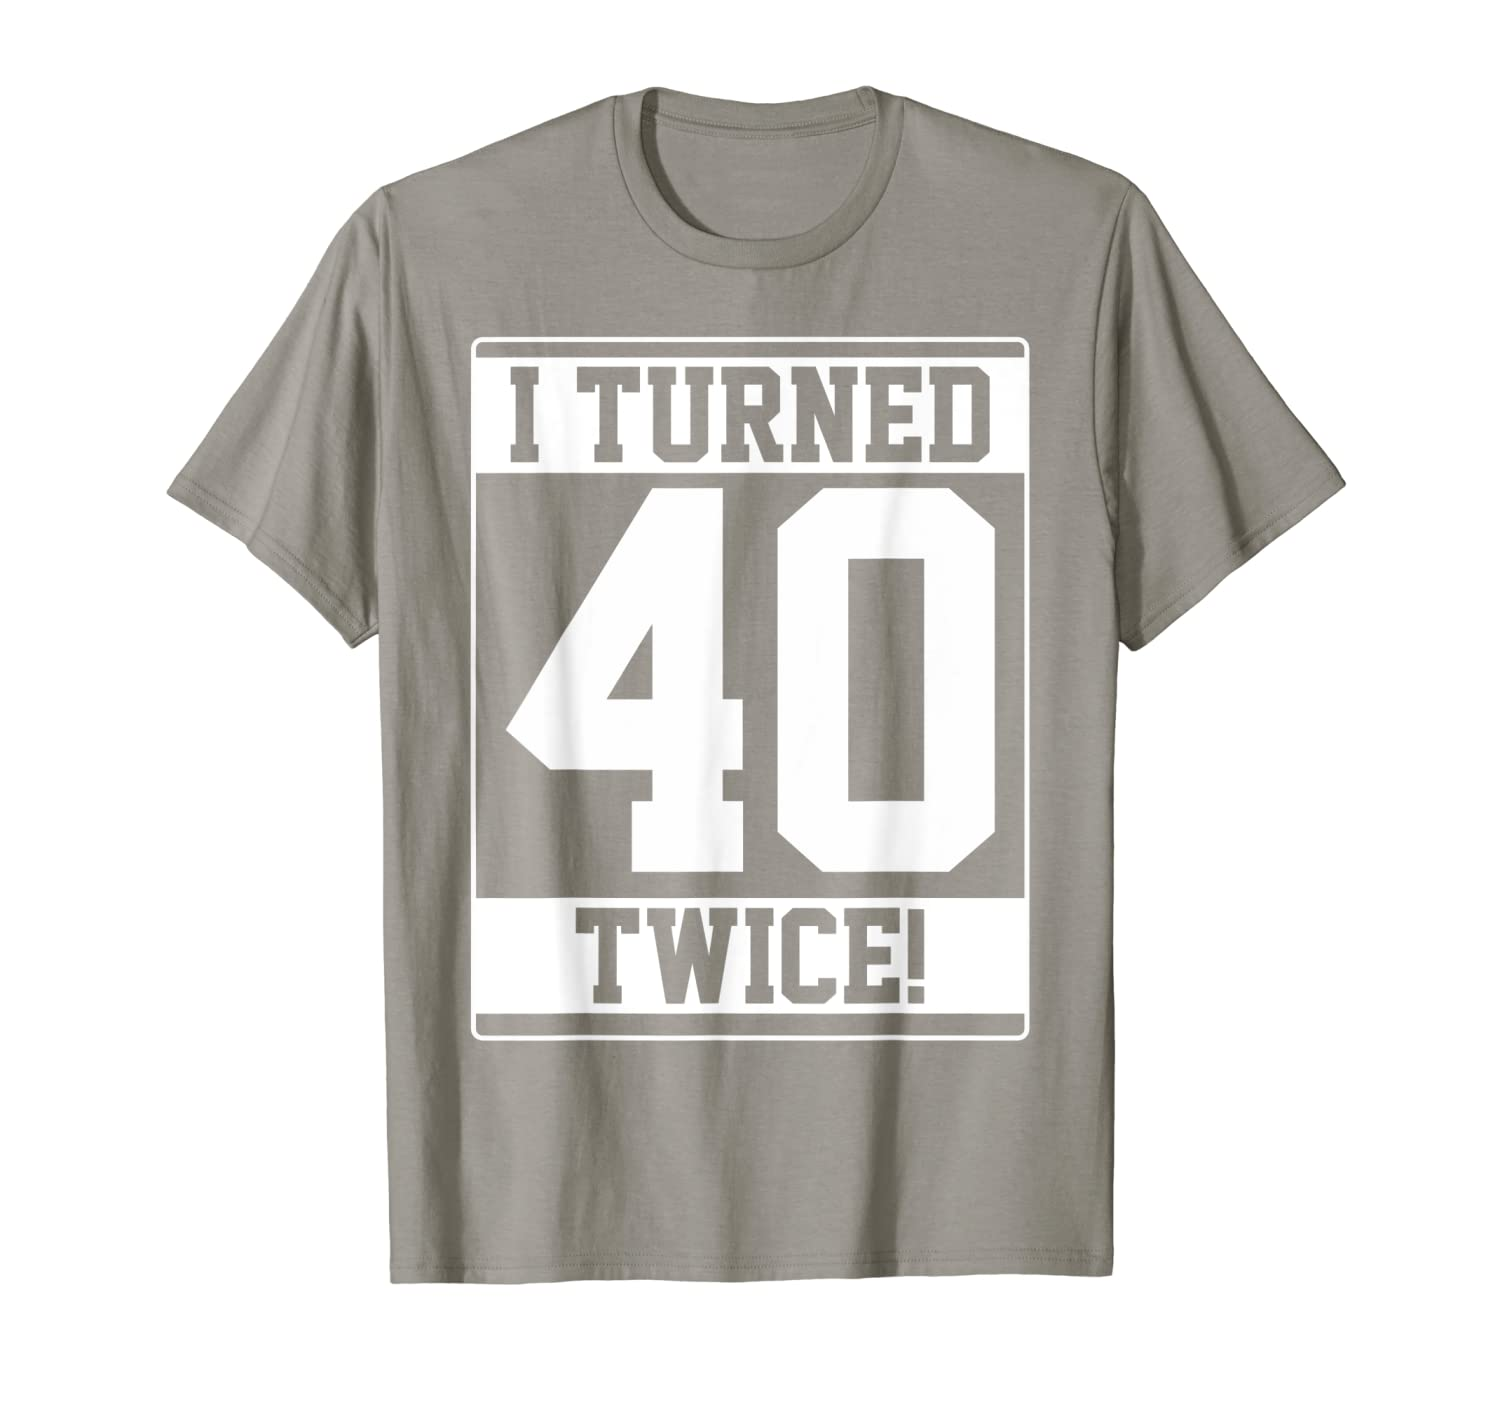 Turned 40 Twice Funny Gift Shirts